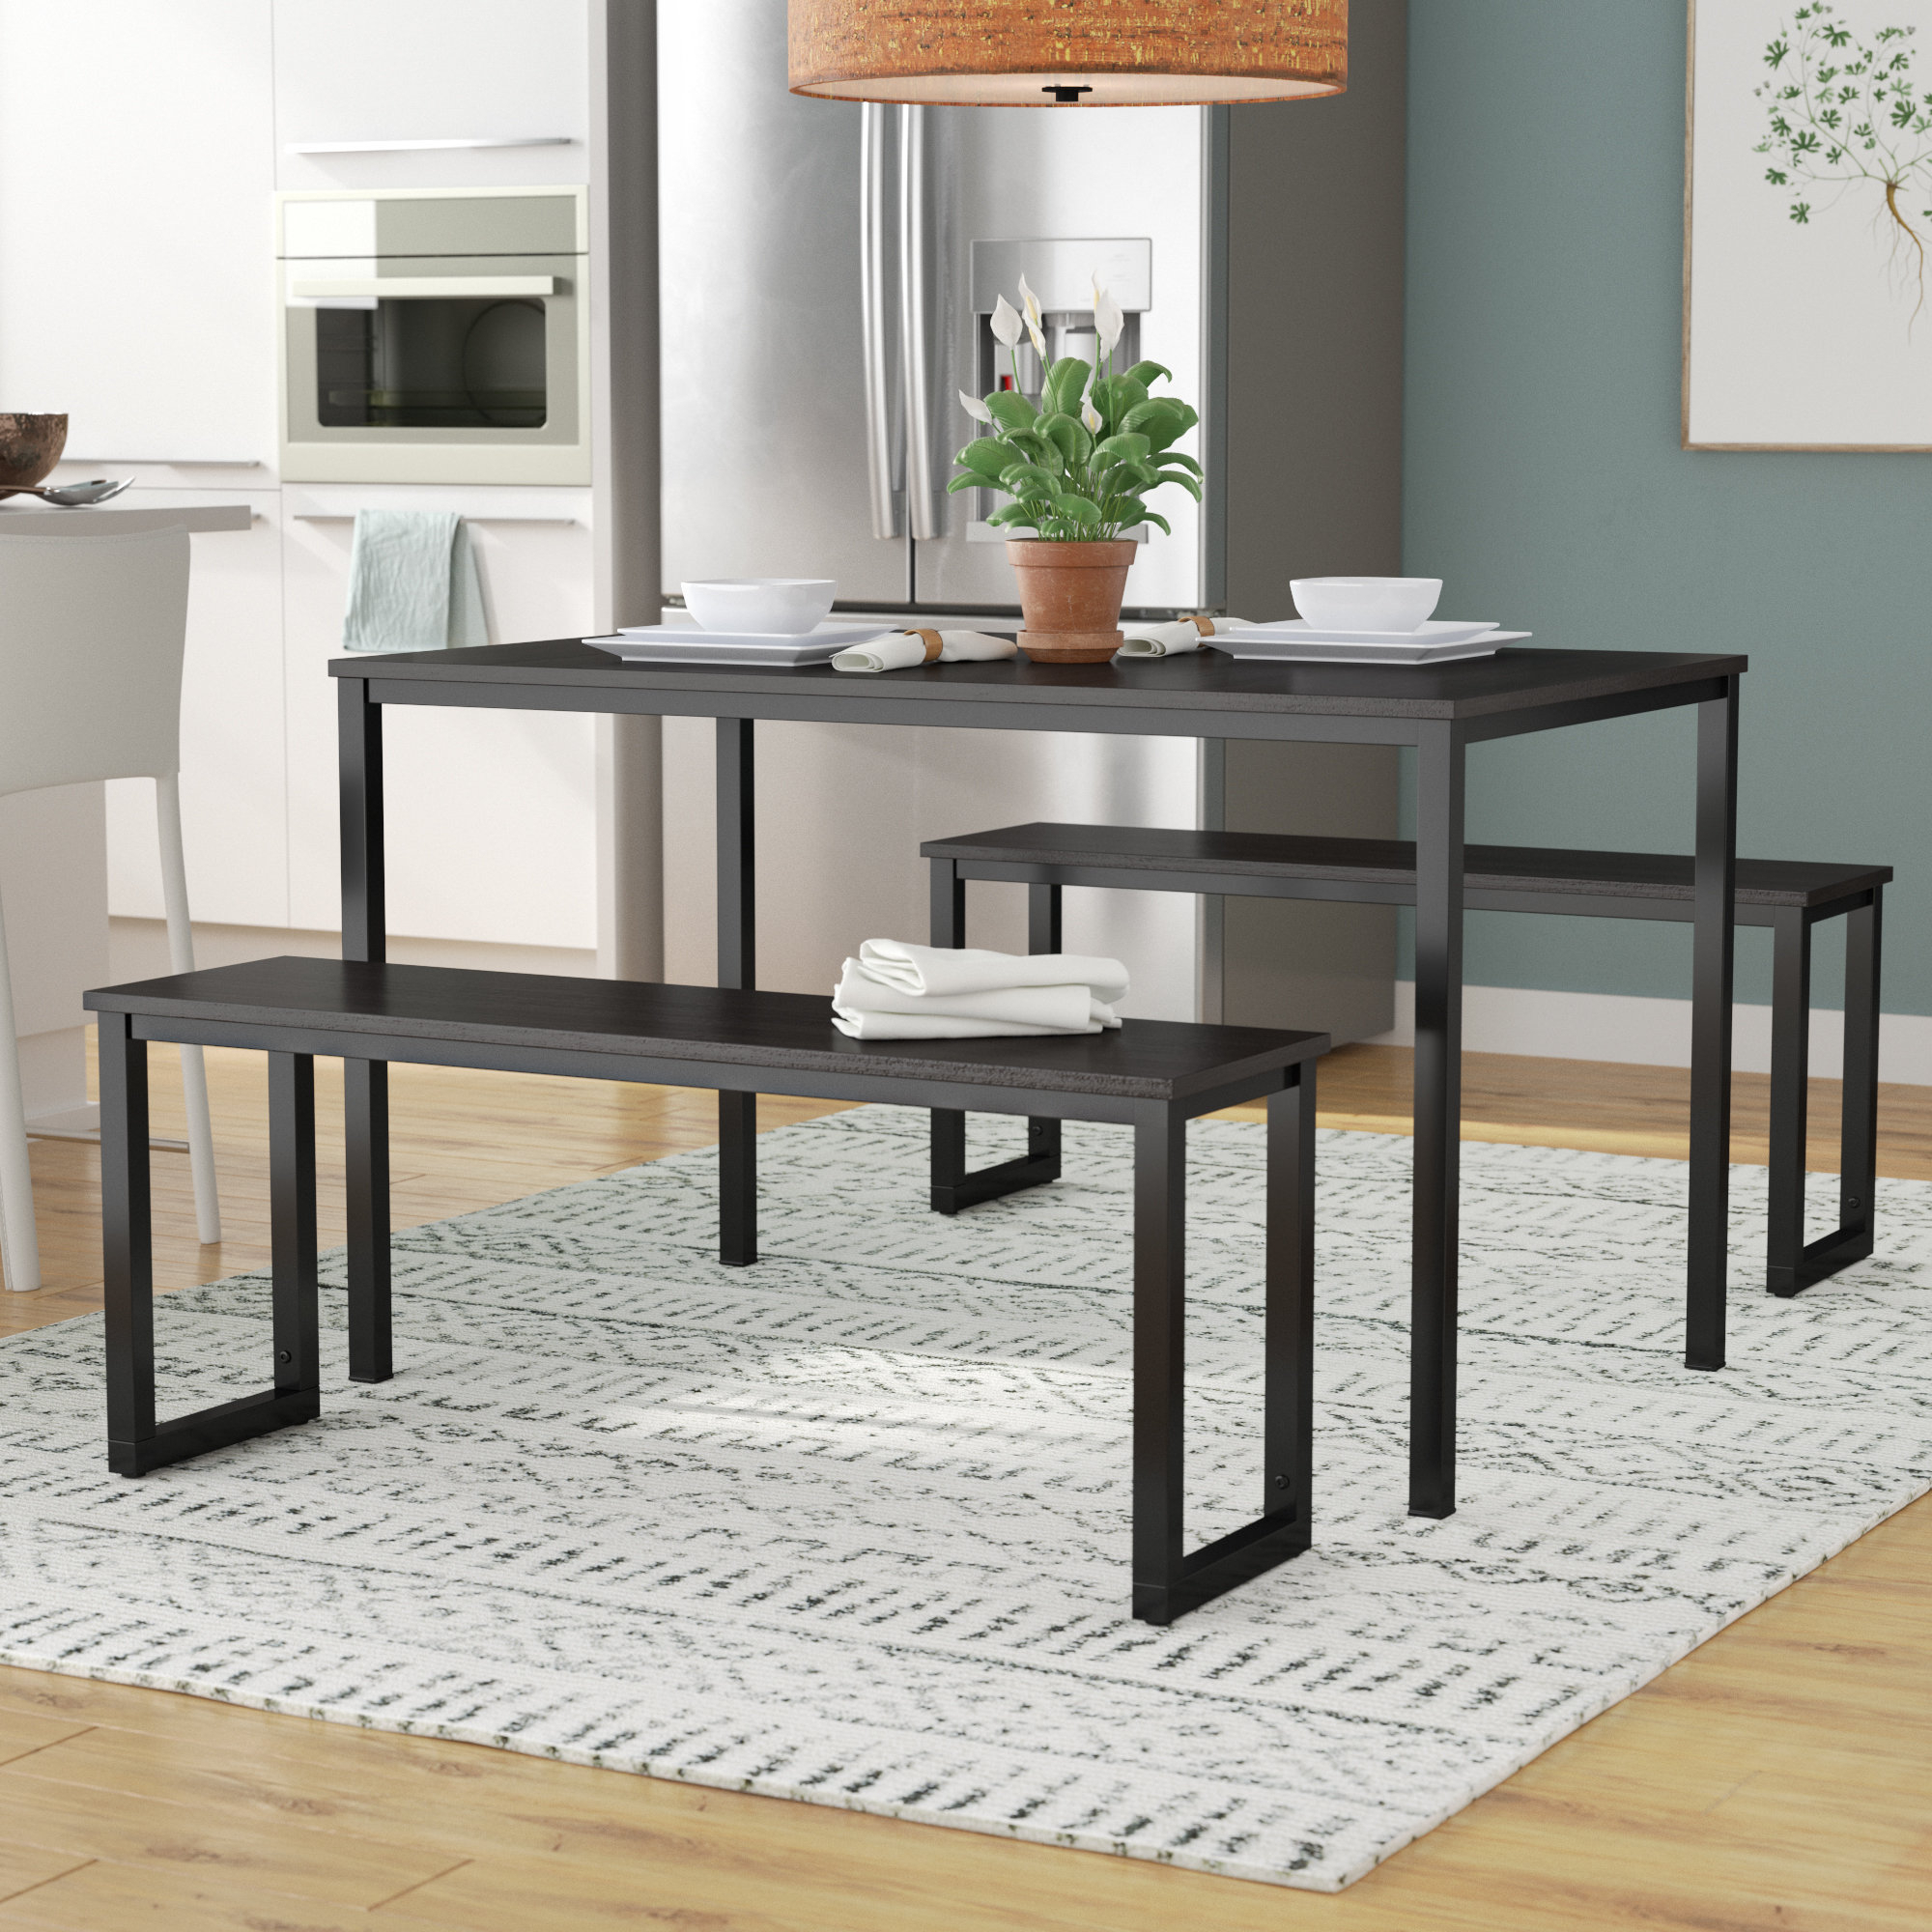 Most Popular Frida 3 Piece Dining Table Set Pertaining To Mysliwiec 5 Piece Counter Height Breakfast Nook Dining Sets (View 9 of 20)